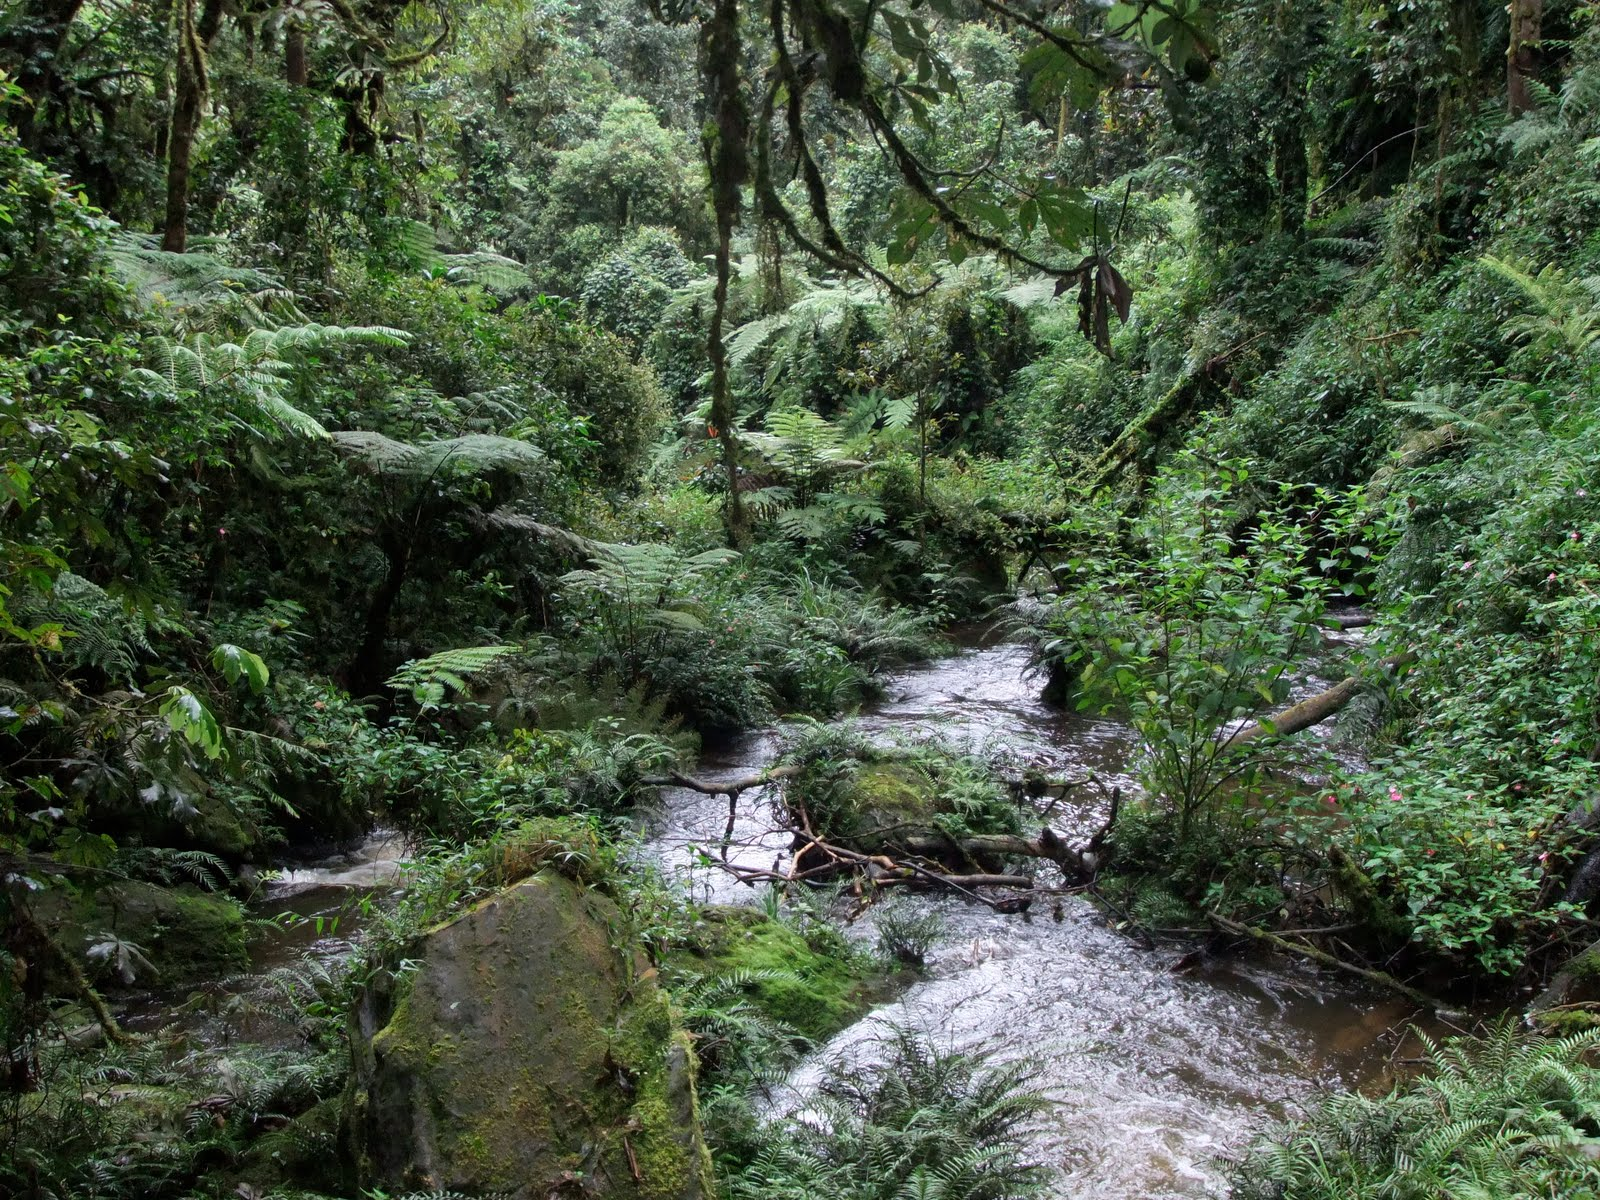 Biodiversity nexus rwanda the beauty of nyungwe national park and 13 primate species and spreading over 1000 square kilometres nyungwe national park is one of the most acclaimed biodiversity rainforests in africa sciox Image collections